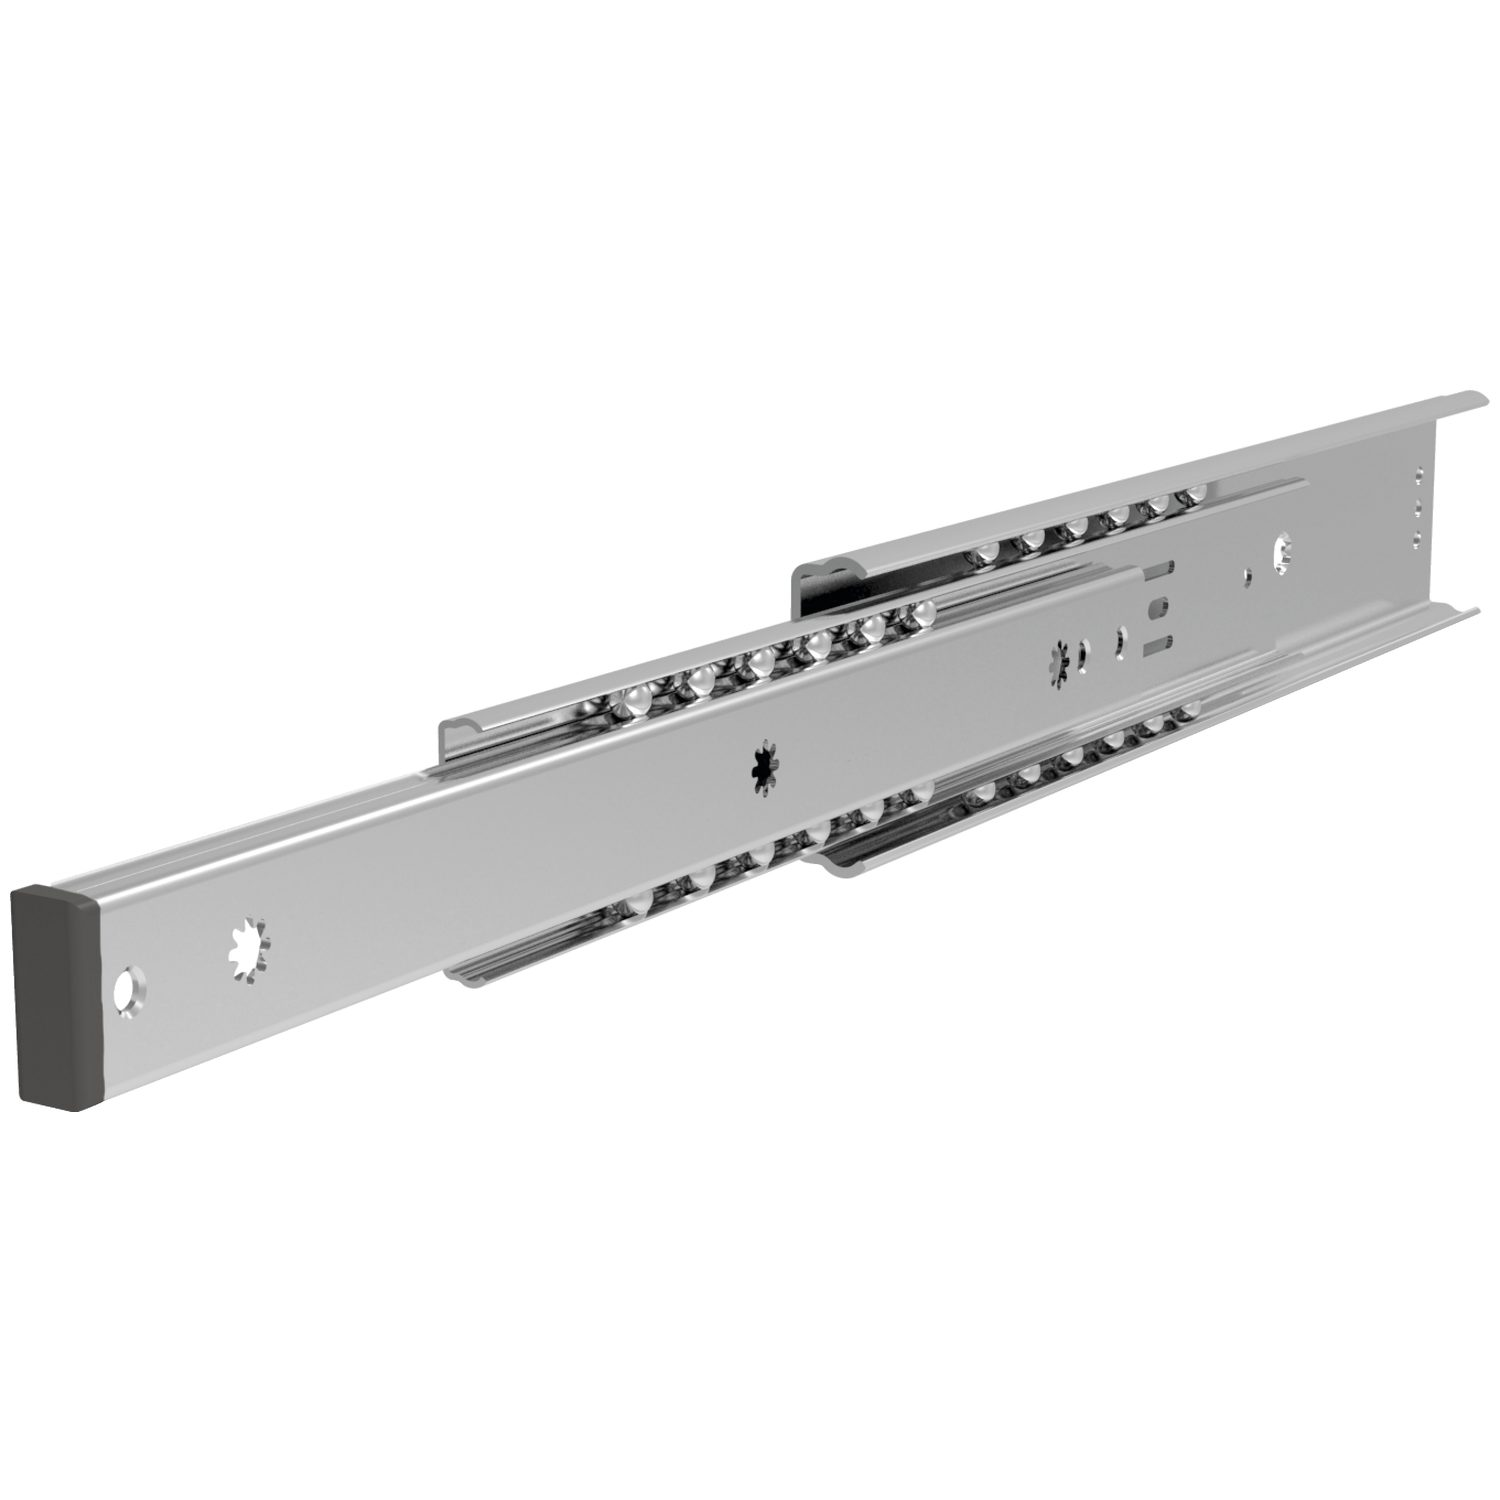 Fully Telescopic Drawer Slide Galvanized steel fully telescopic drawer slides. Friction locked in closed position. Fix rail with M4 countersunk screws. loads up to 40kg per pair.